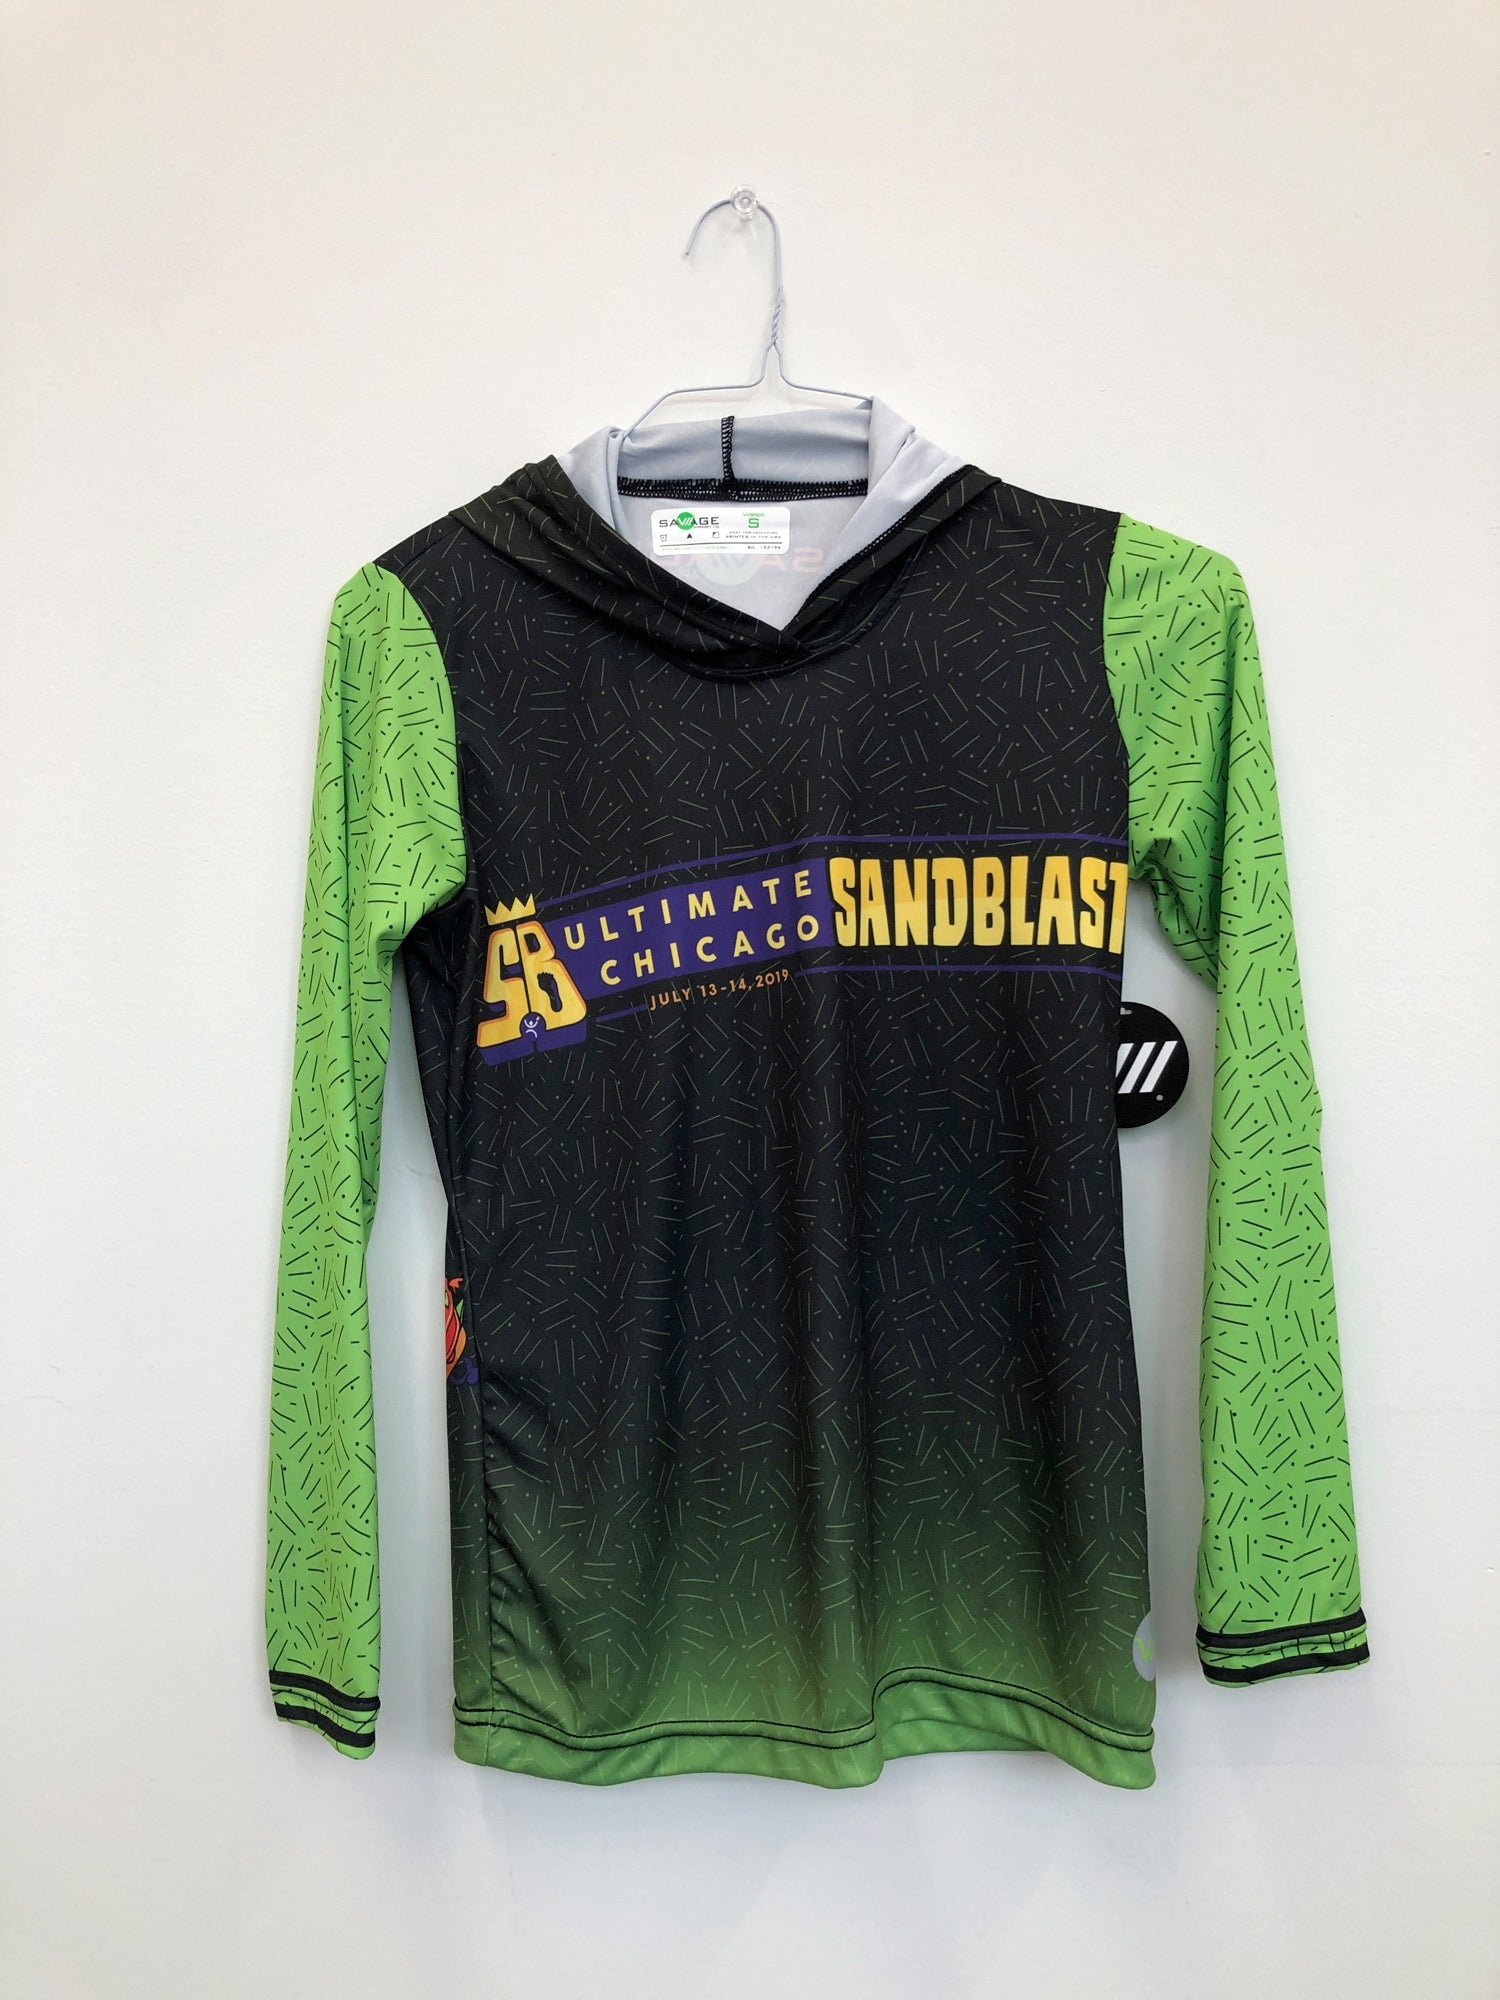 Sandblast Chicago Champ Jersey